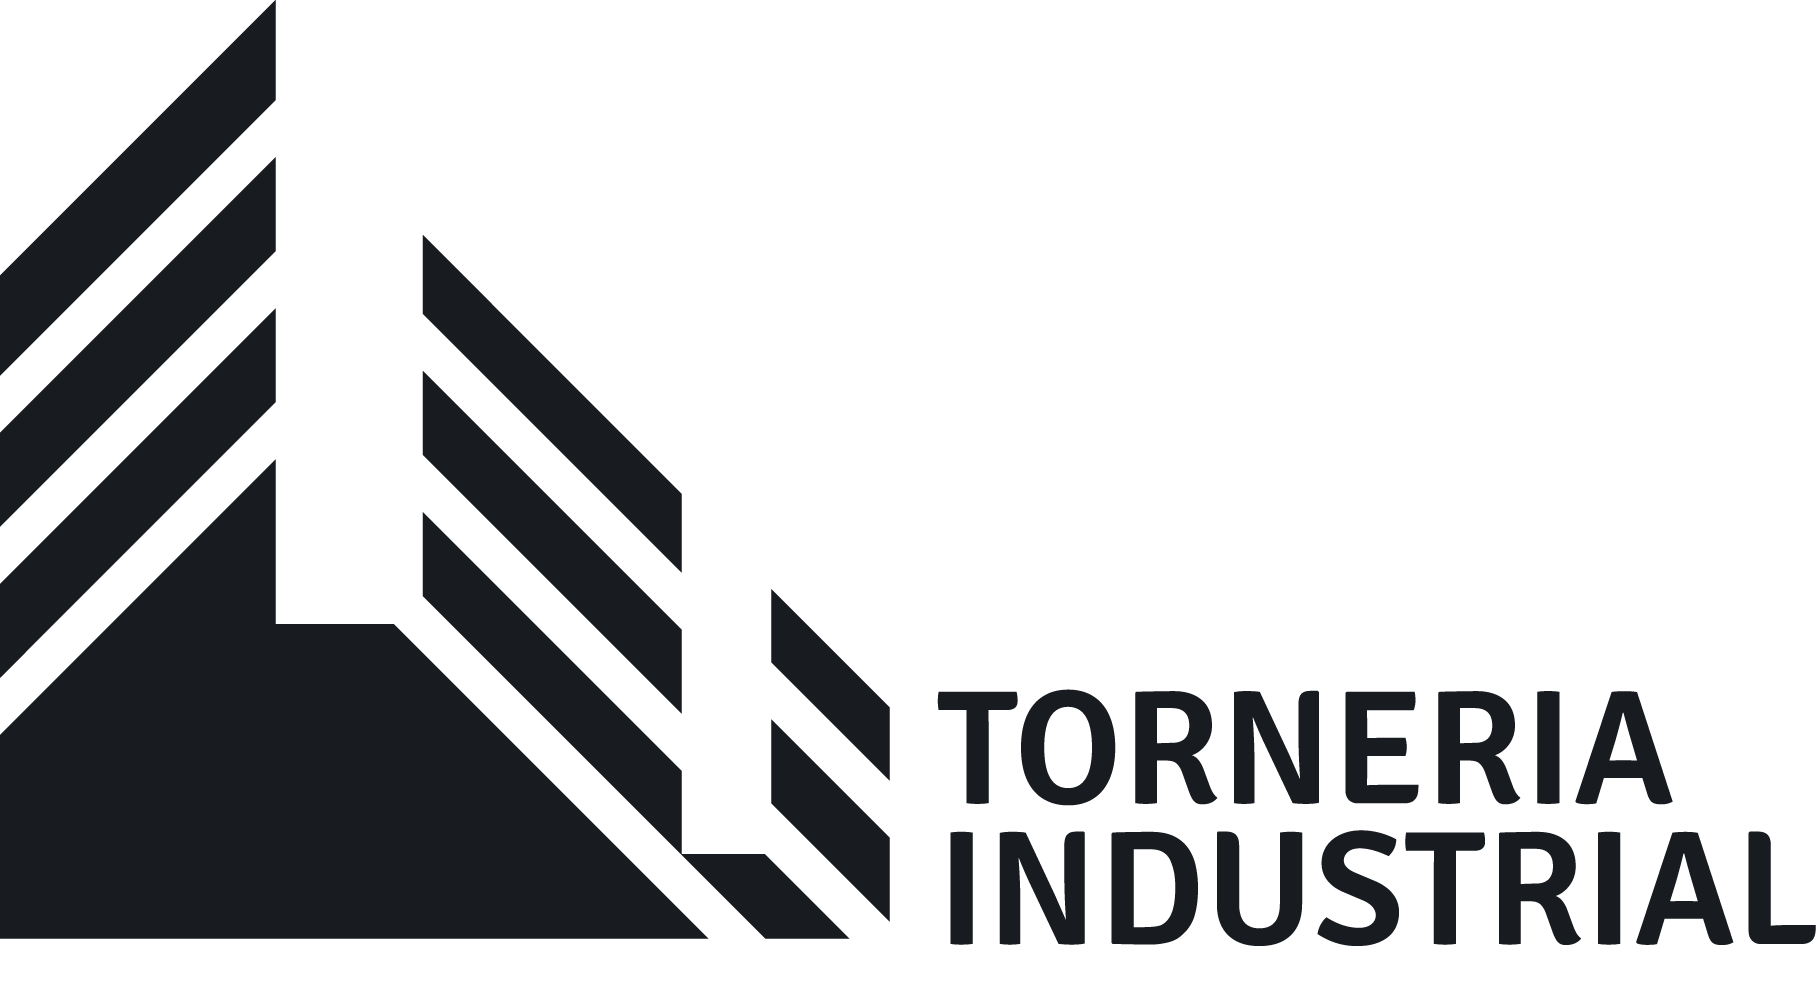 Torneria Industrial